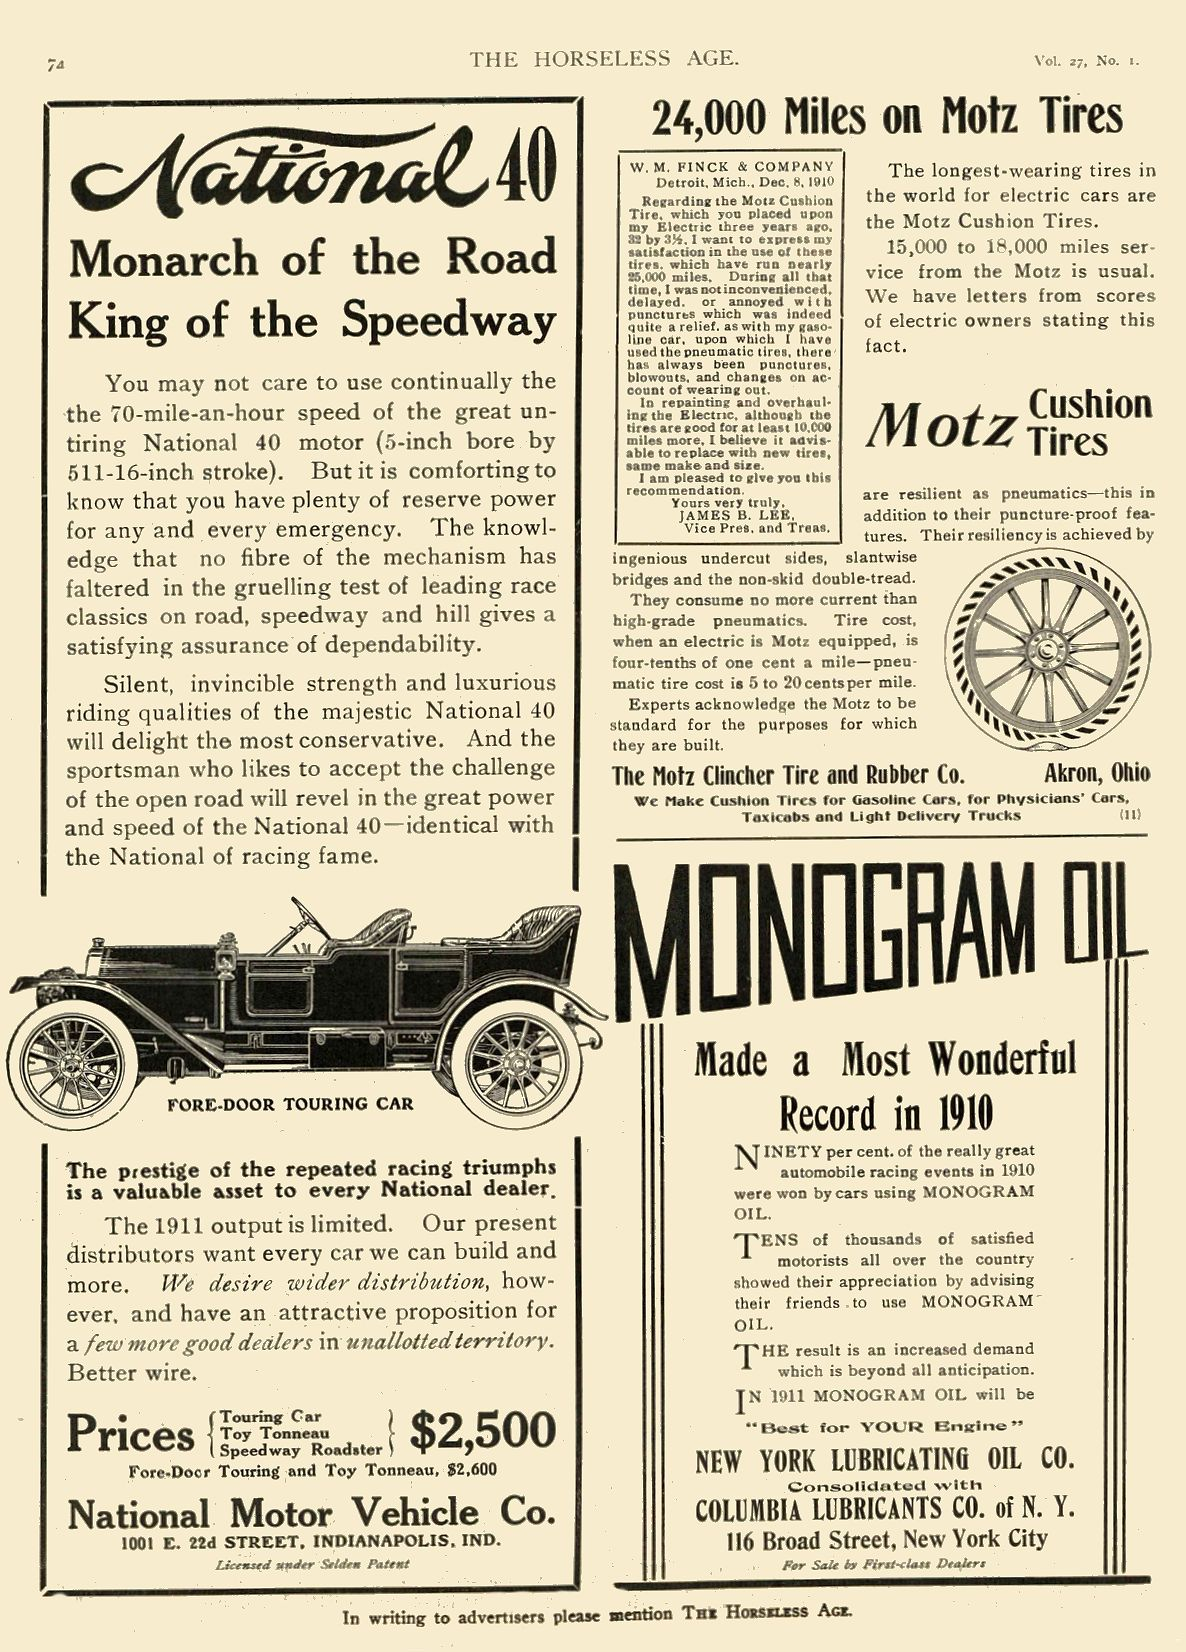 1911 1 4 NATIONAL Monarch of the Road King of the Speedway National Motor Vehicle Co. Indianapolis, IND THE HORSELESS AGE January 4, 1911 8″x11″ page 74